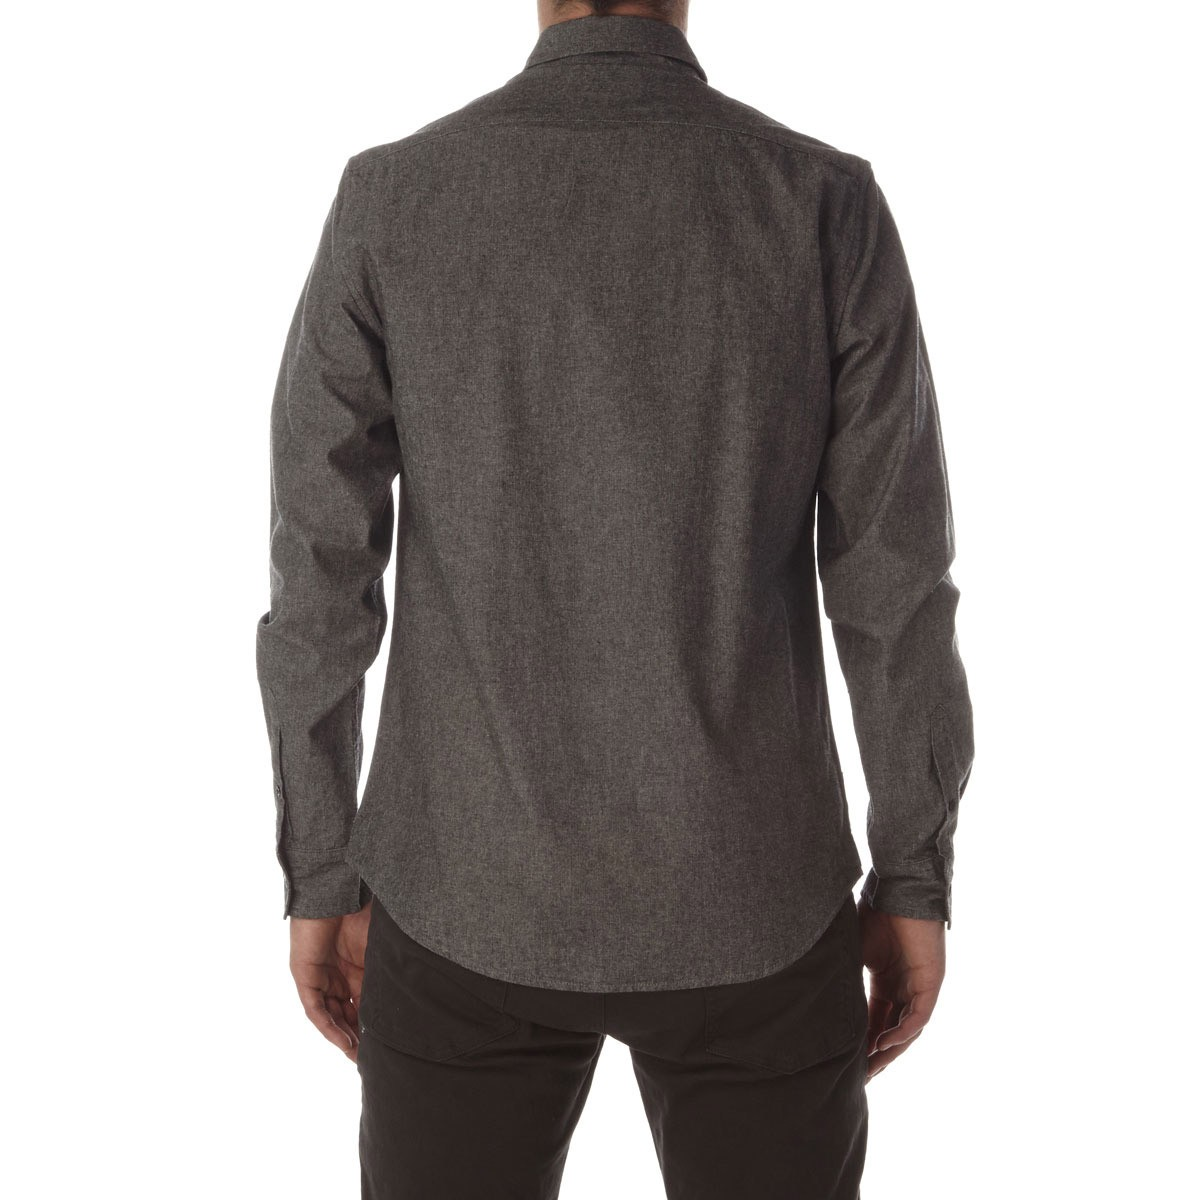 Ccs switch long sleeve woven shirt distressed black for How to make a distressed shirt